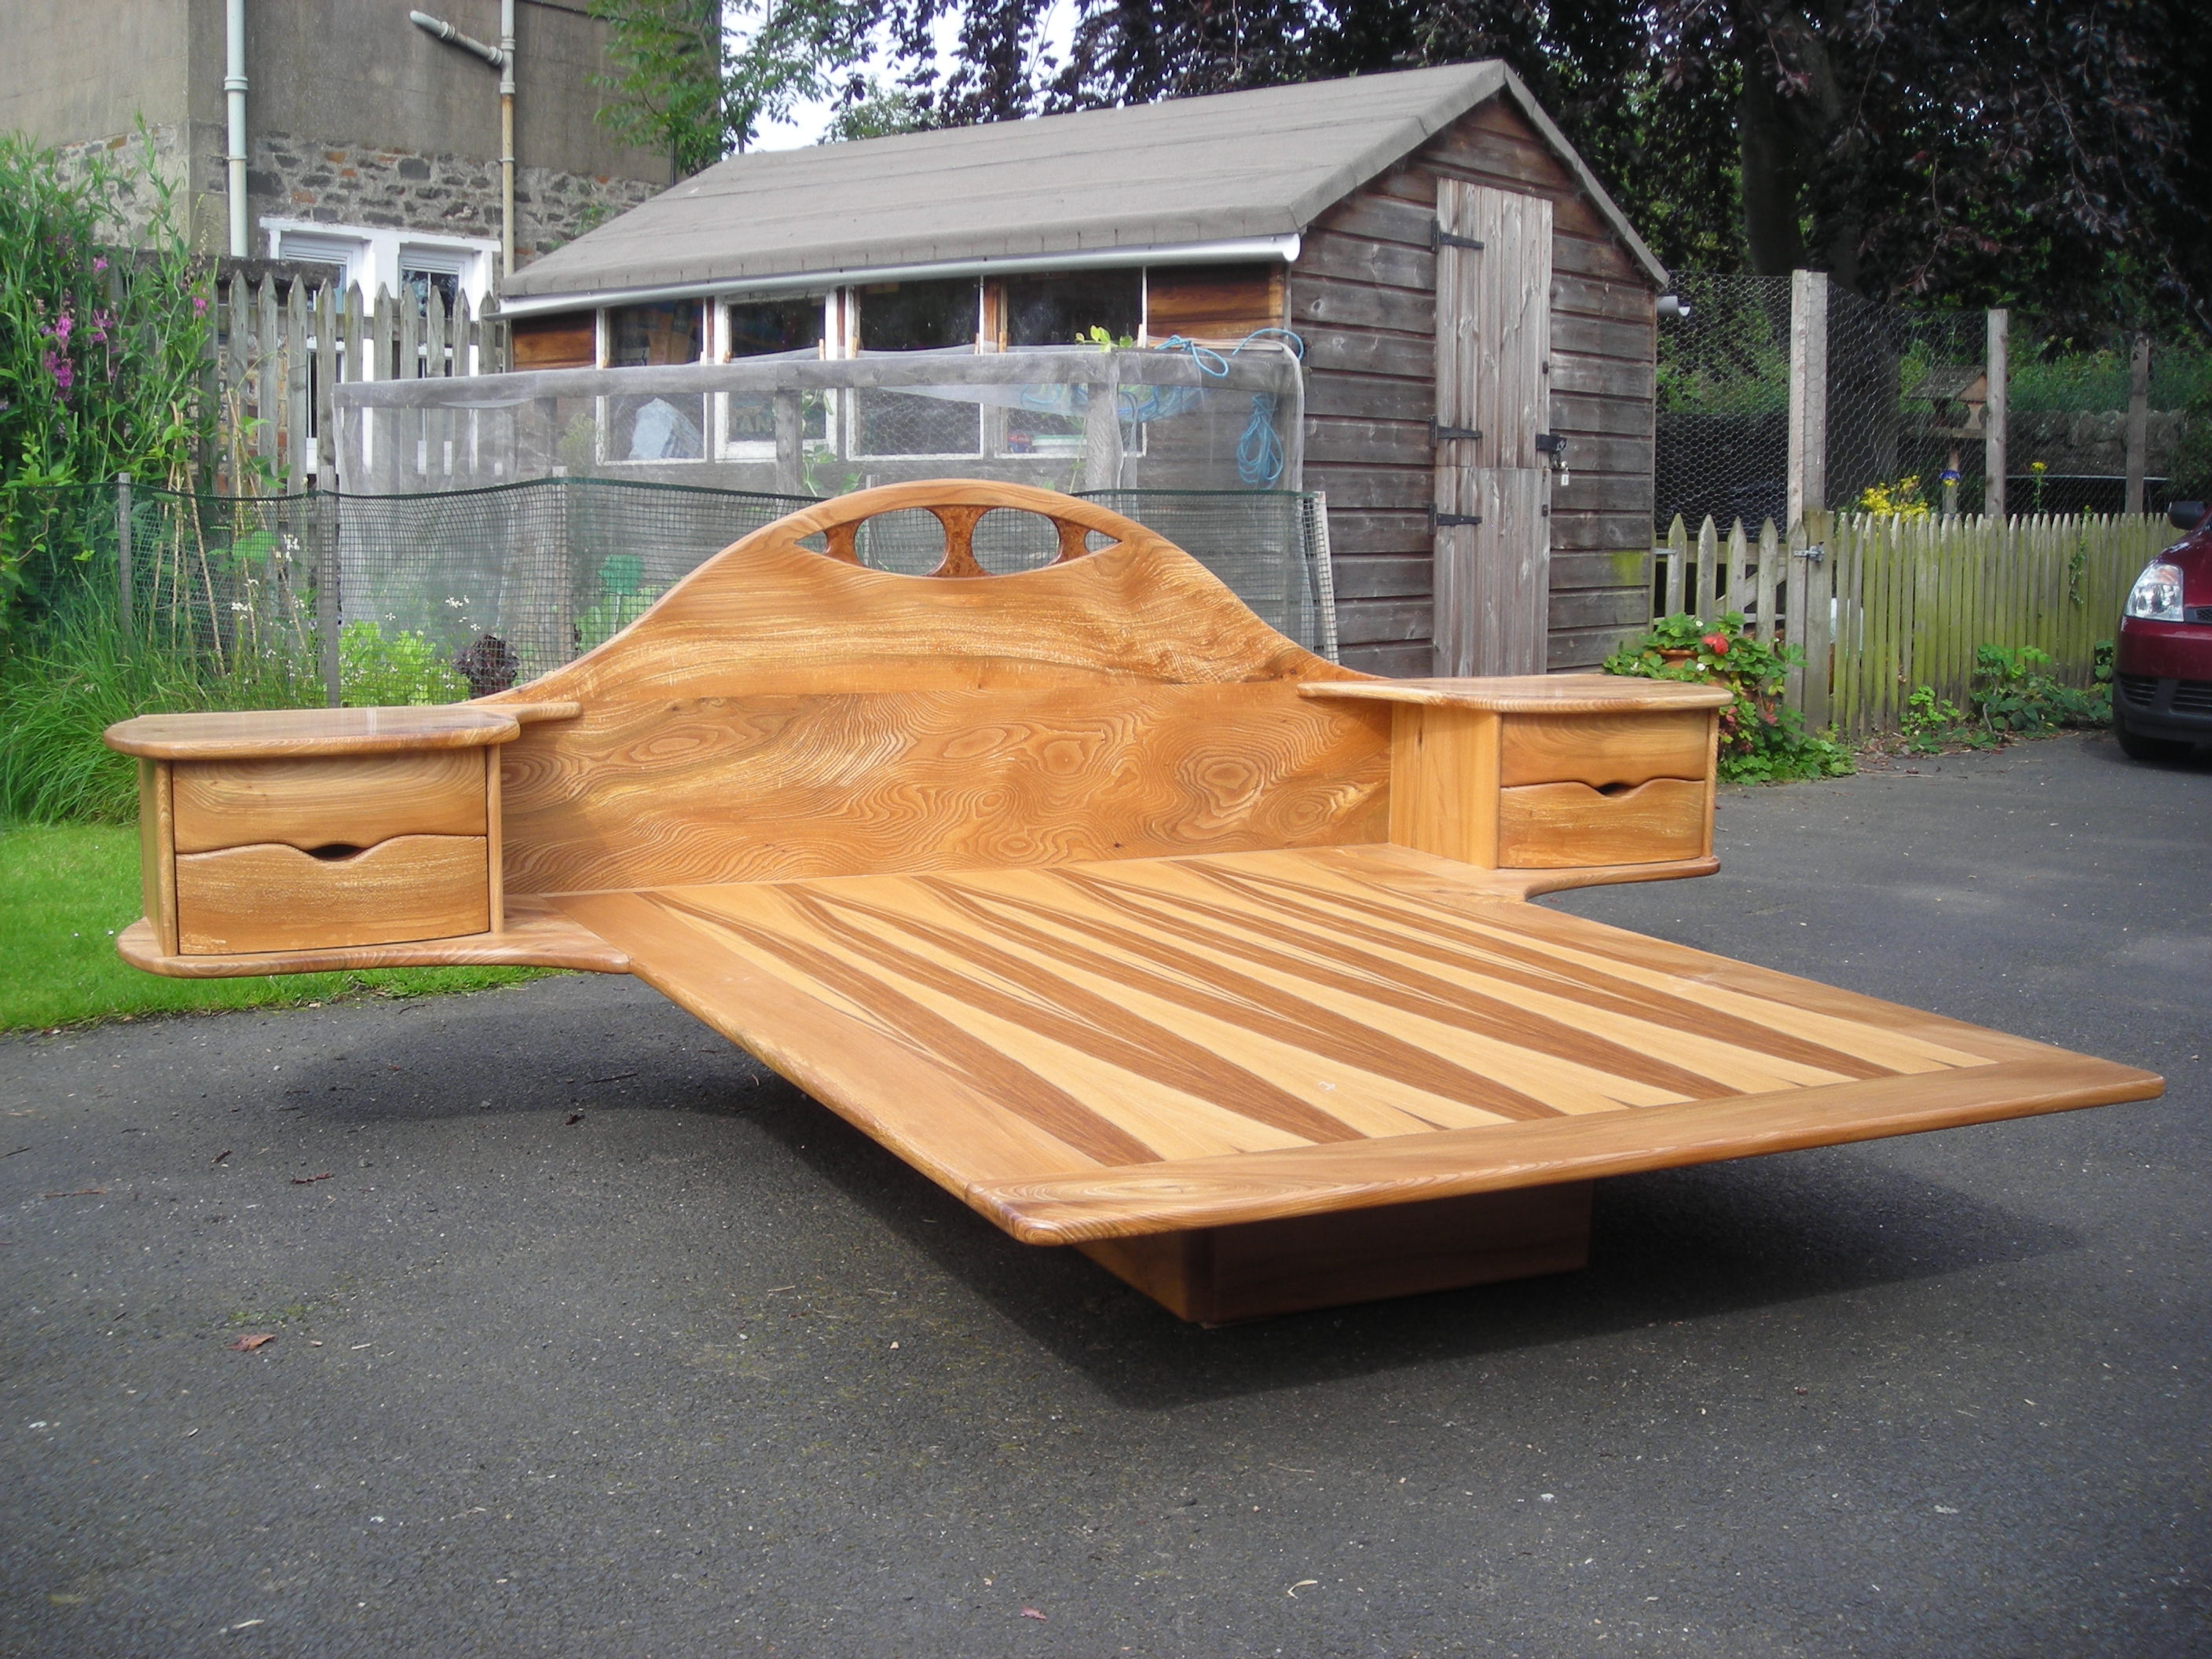 Outdoor floating bed - Floating Bed